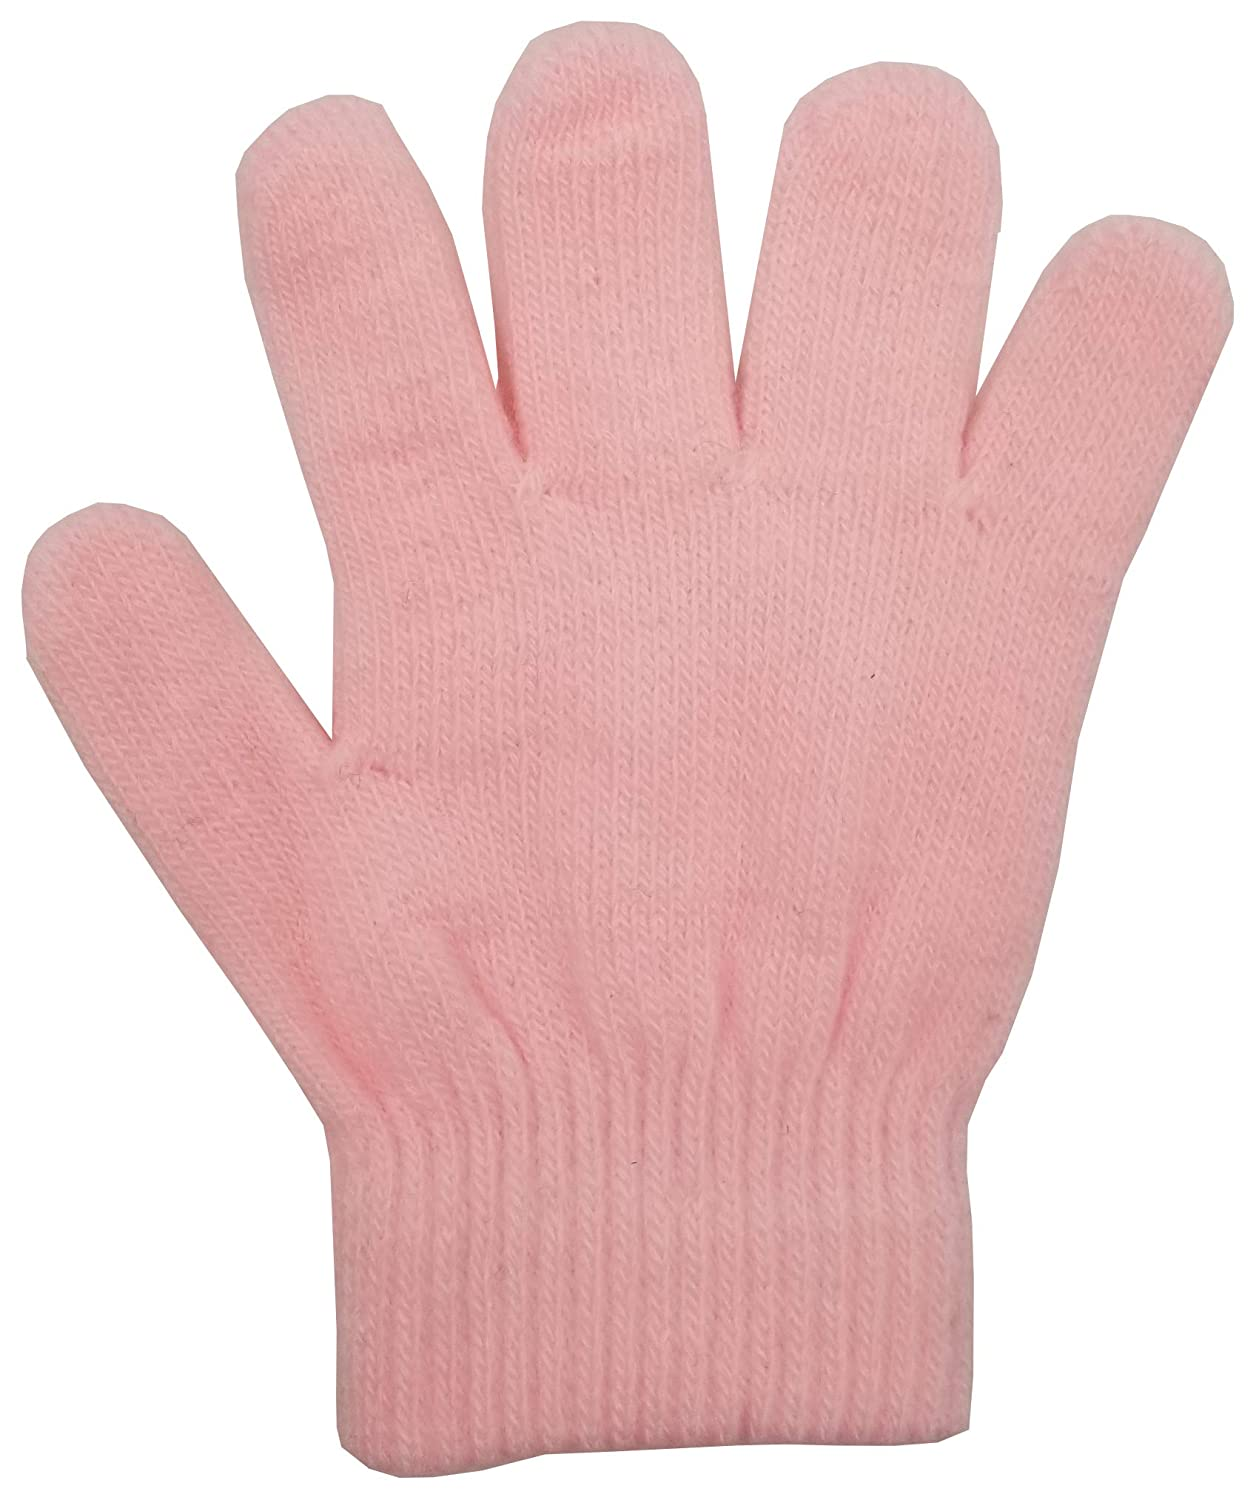 Cute Colorful Stretchy Wholesale for Boys Girls Toddlers Ages 2-6 24 Pairs Warm Kids Winter Magic Gloves